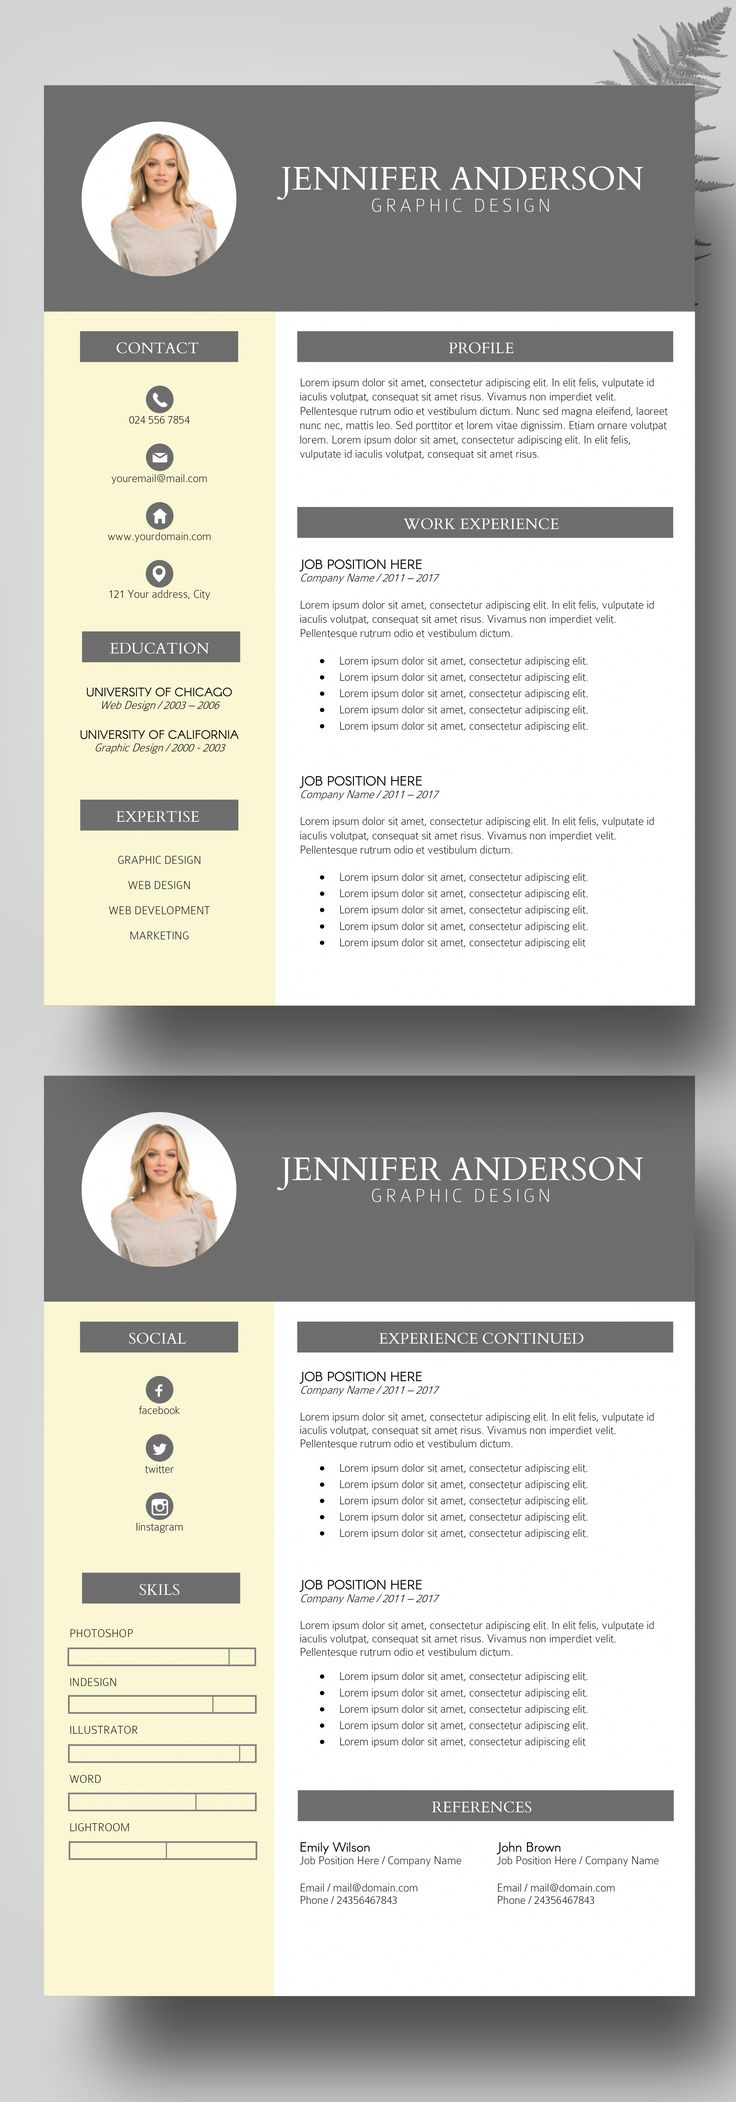 Buy Resume Templates Interesting 46 Best Resume Templates 50% Off Special Offer Images On Pinterest